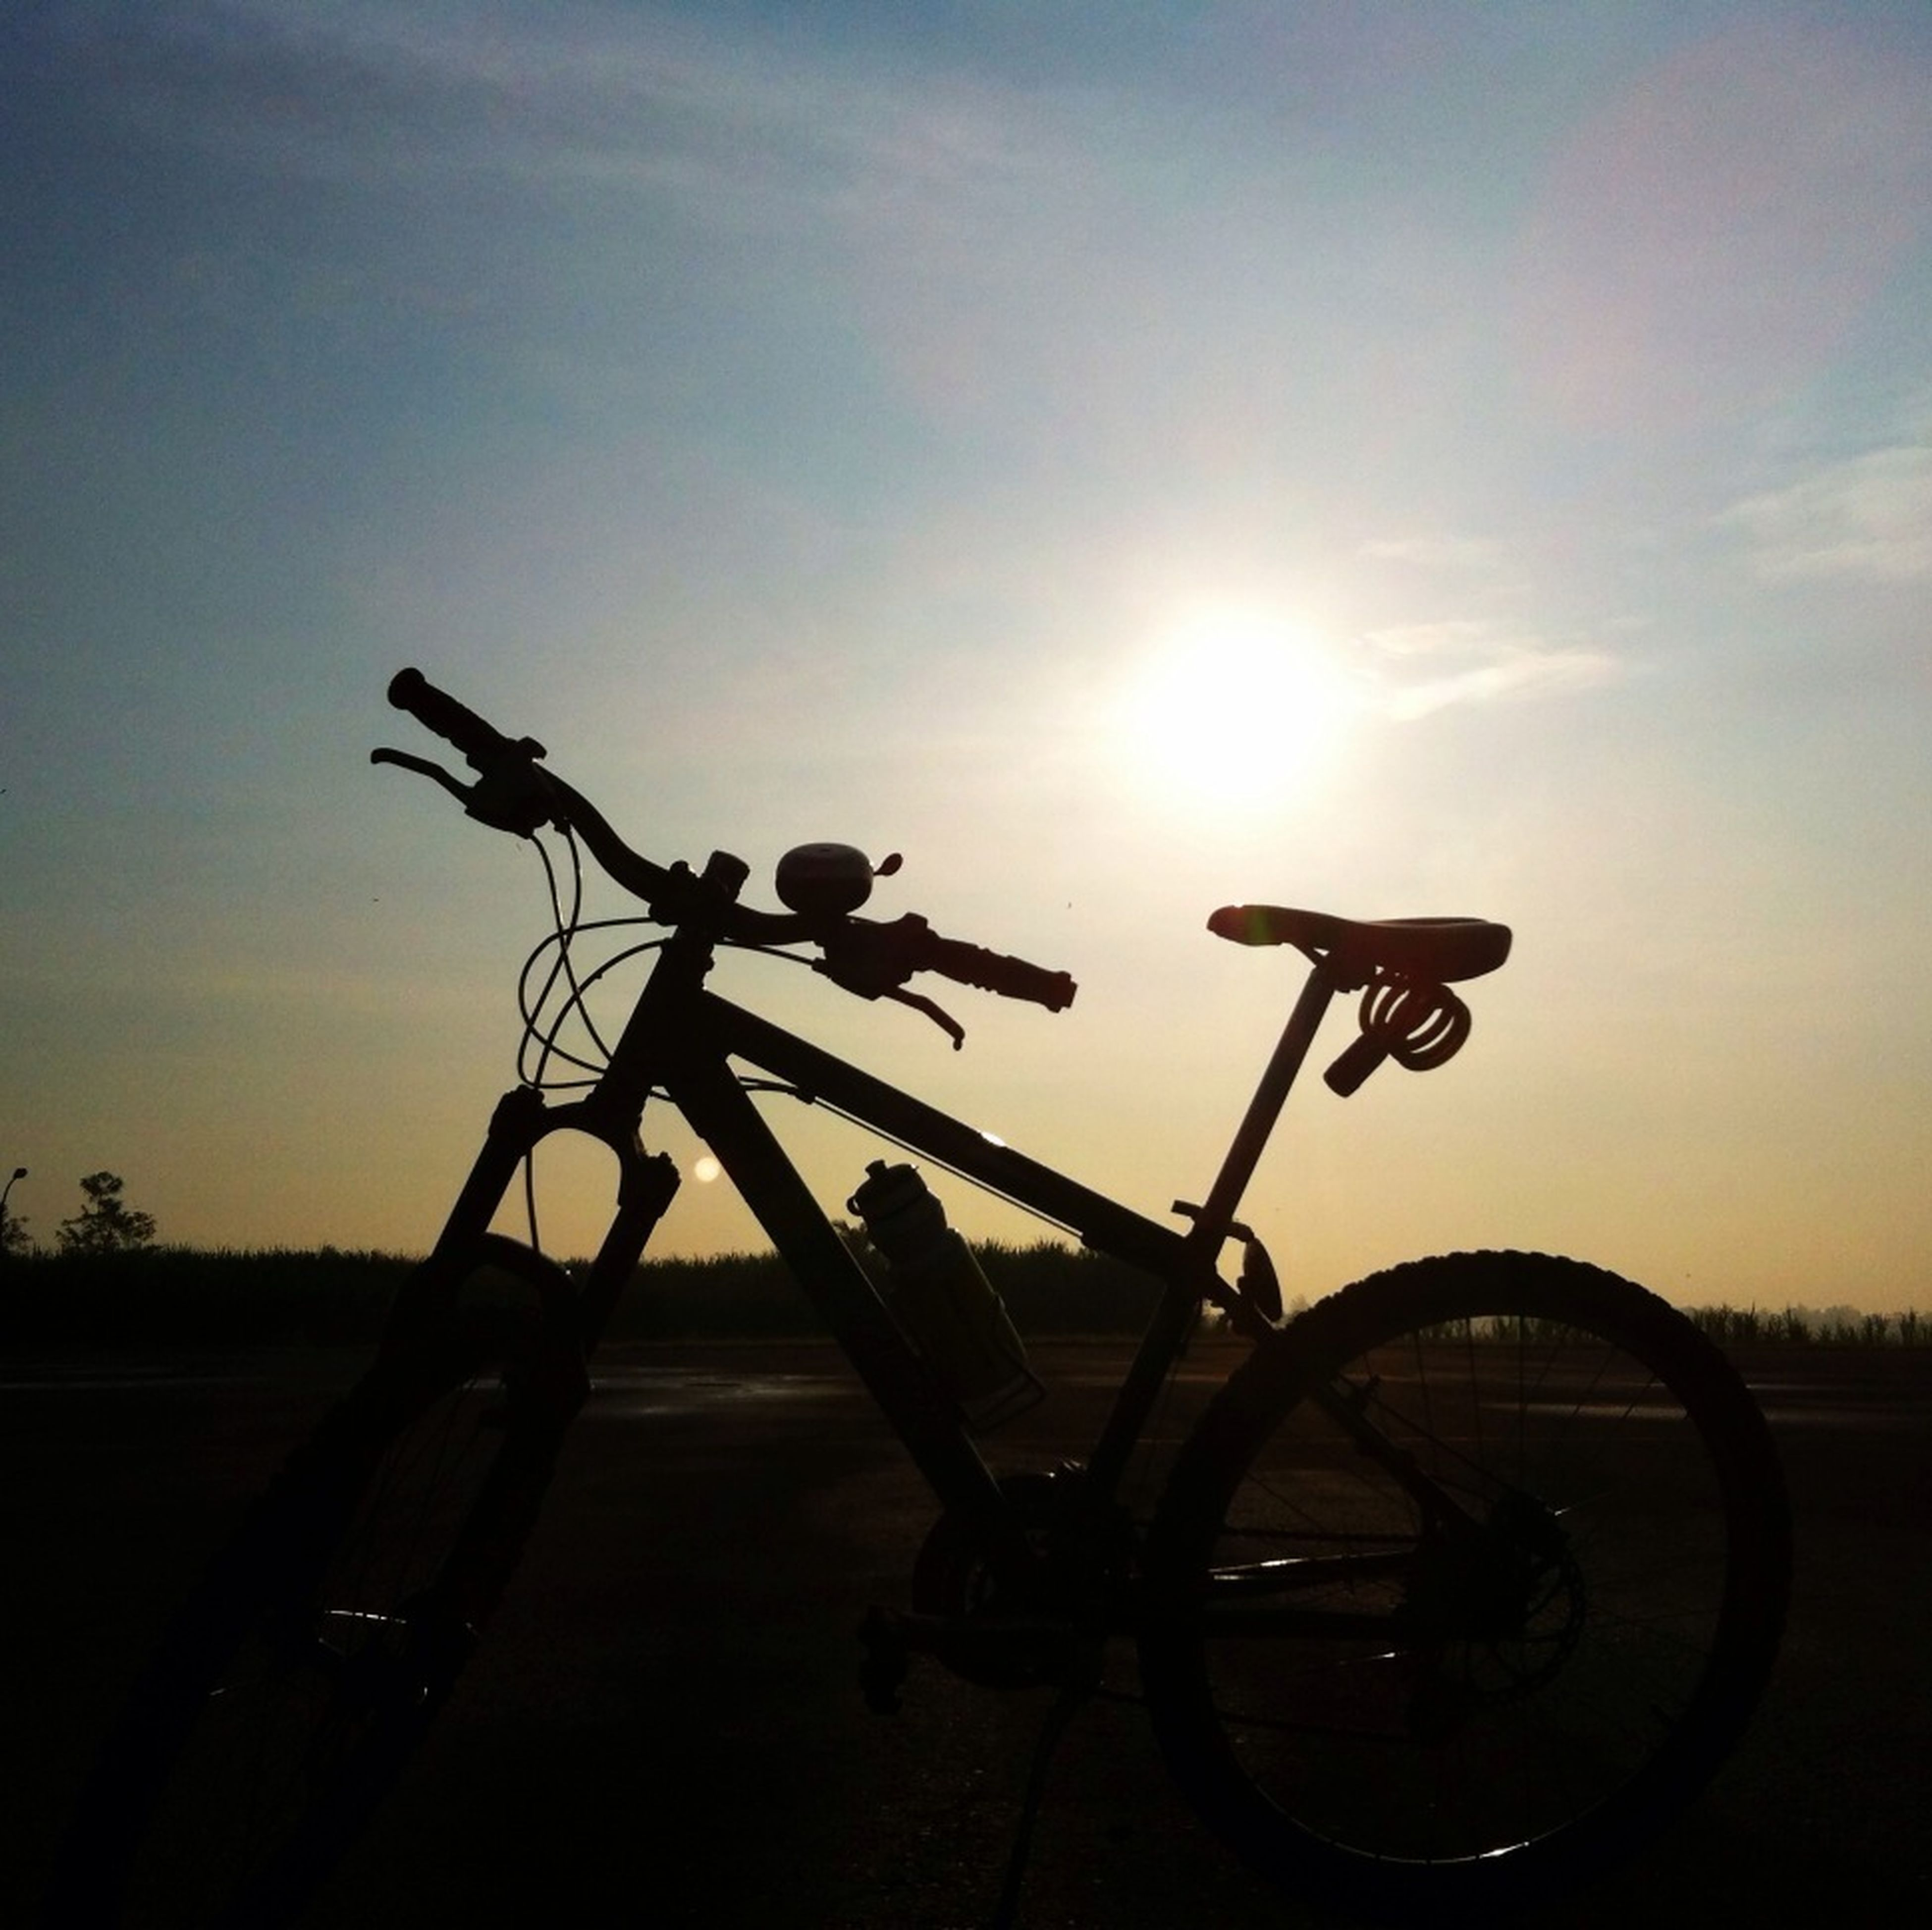 transportation, mode of transport, land vehicle, sunset, sky, bicycle, sun, silhouette, stationary, car, sunlight, cloud - sky, parked, parking, low angle view, sunbeam, road, outdoors, travel, no people